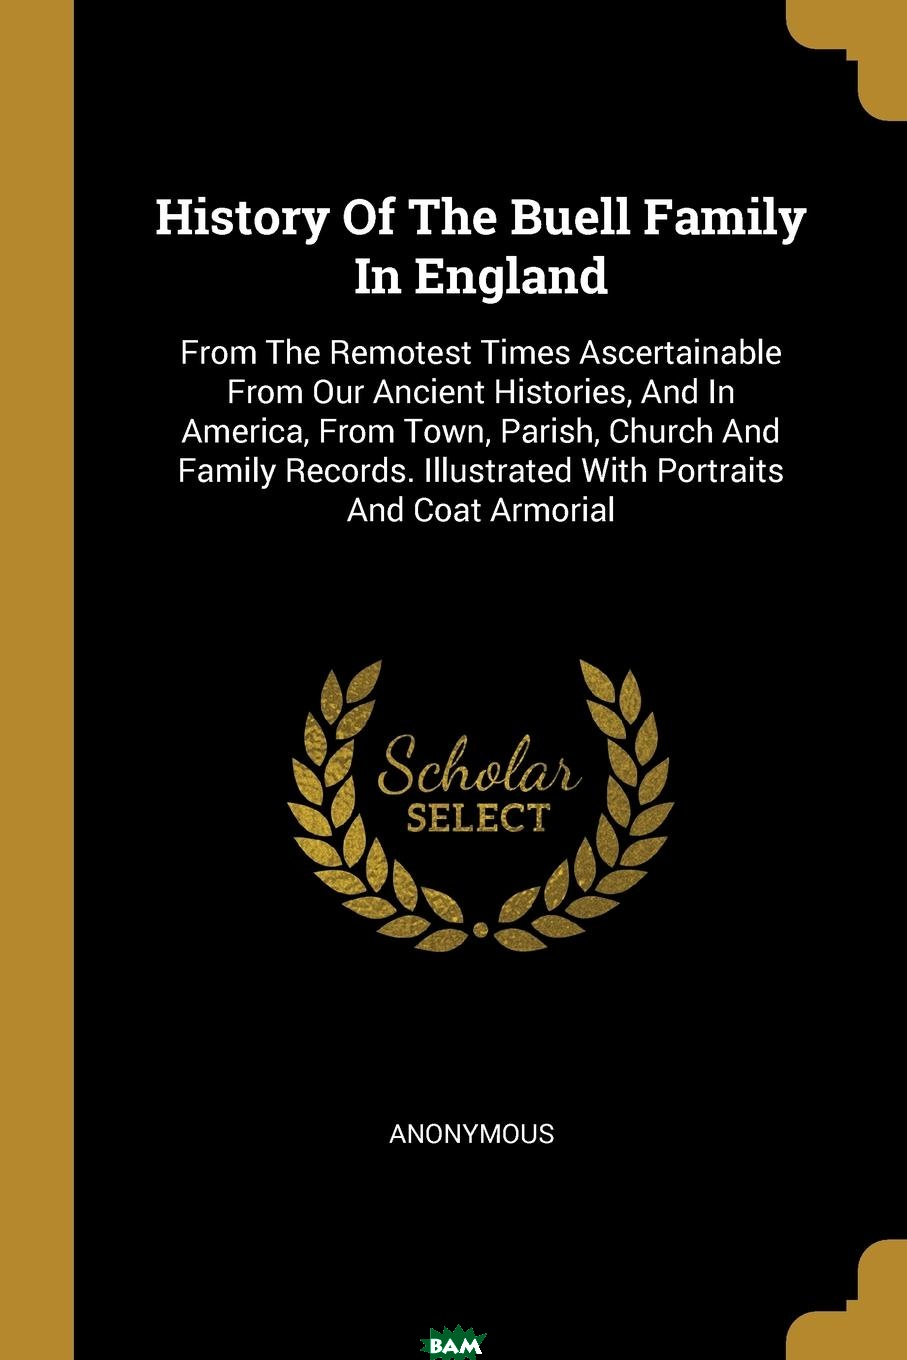 Купить History Of The Buell Family In England. From The Remotest Times Ascertainable From Our Ancient Histories, And In America, From Town, Parish, Church And Family Records. Illustrated With Portraits And, M. l`abbe Trochon, 9780274710706